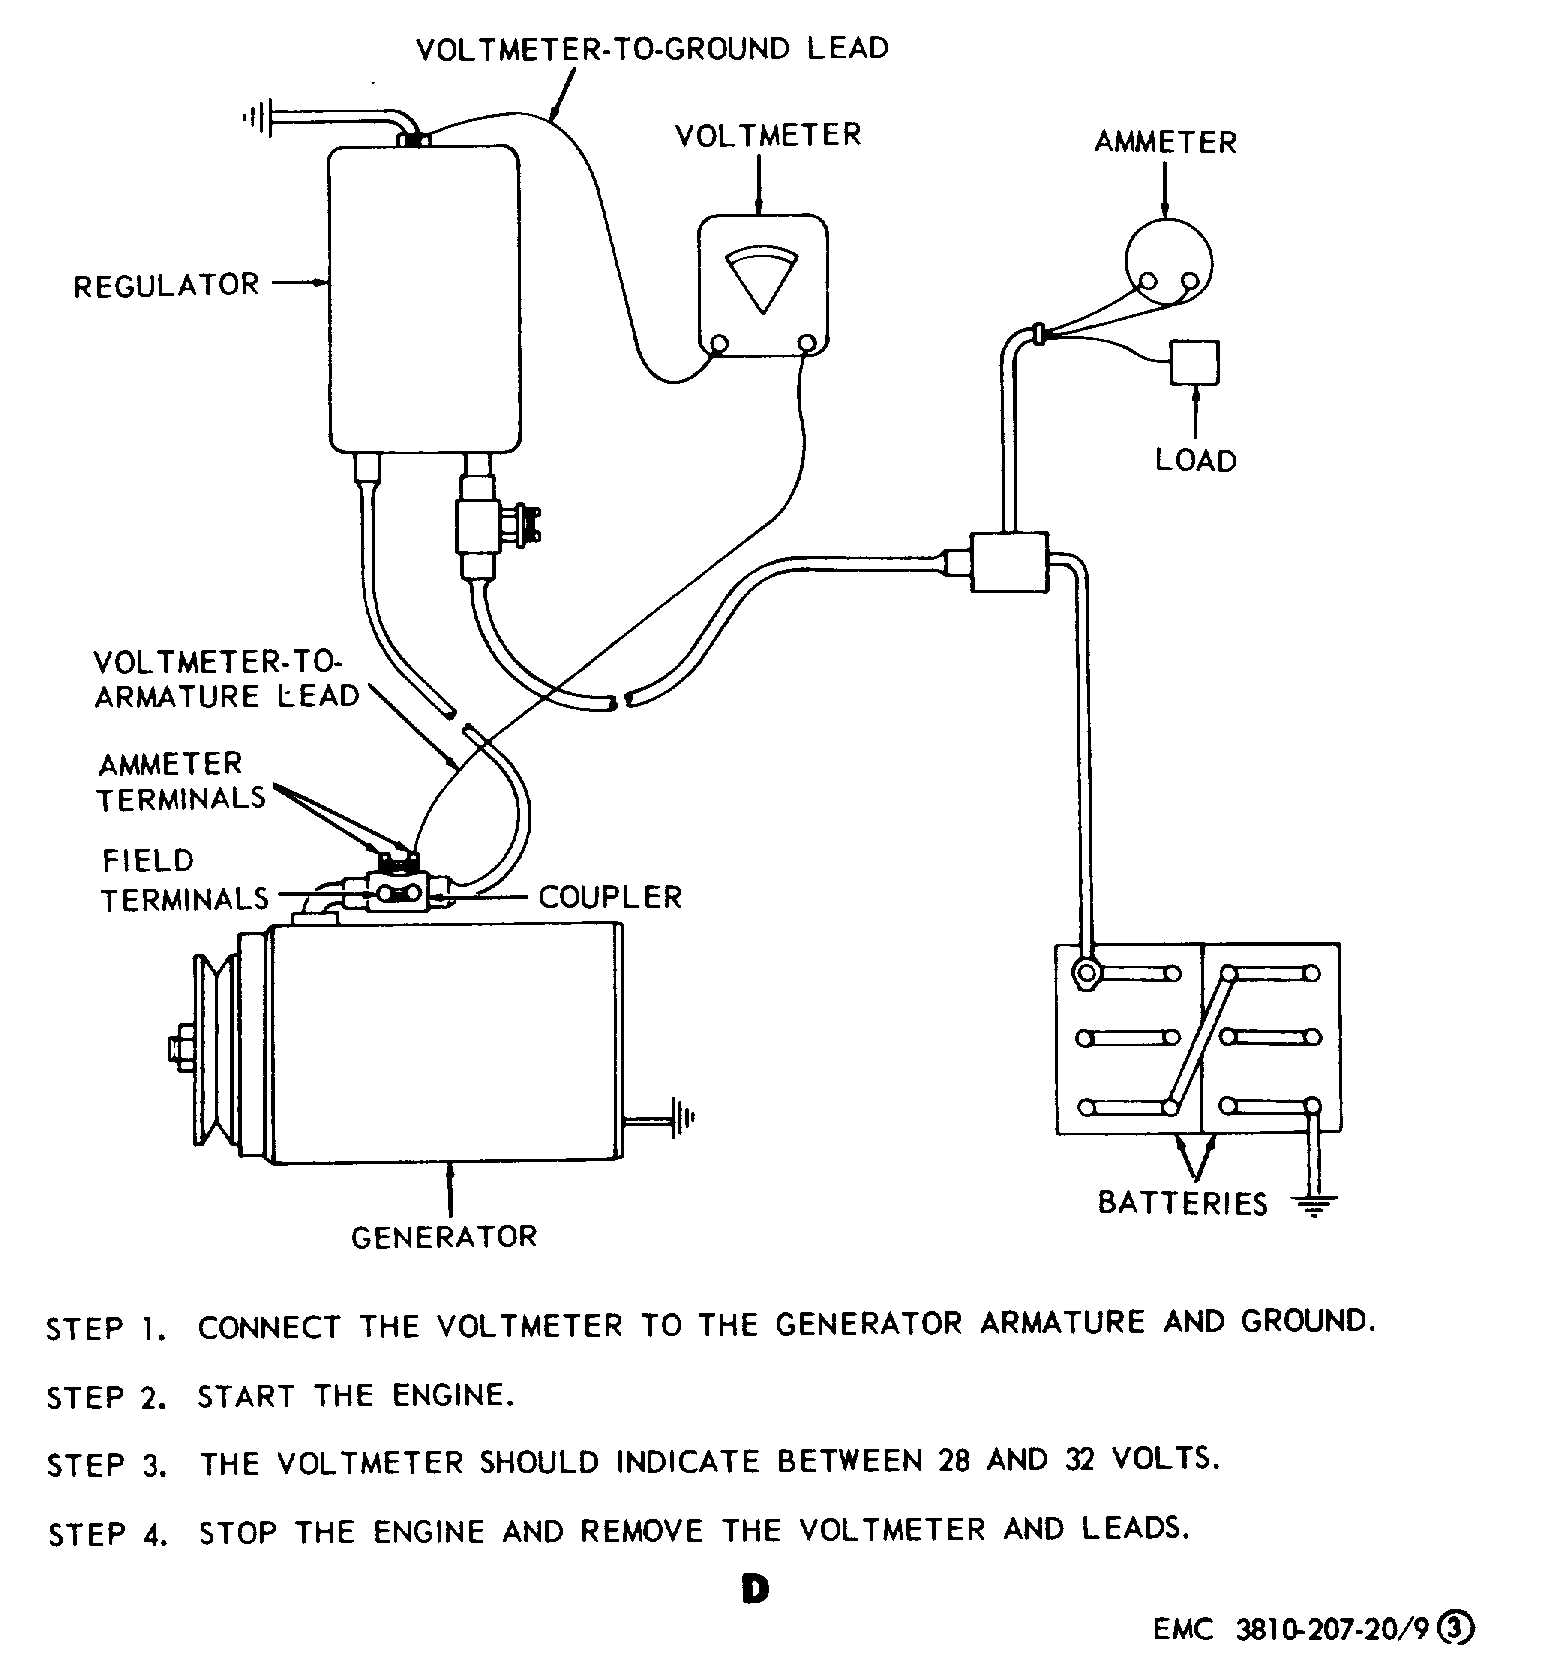 marine voltage regulator wiring diagram 39 wiring diagram images wiring diagrams Basic Ford Solenoid Wiring Diagram Ford Ignition Coil Wiring Diagram